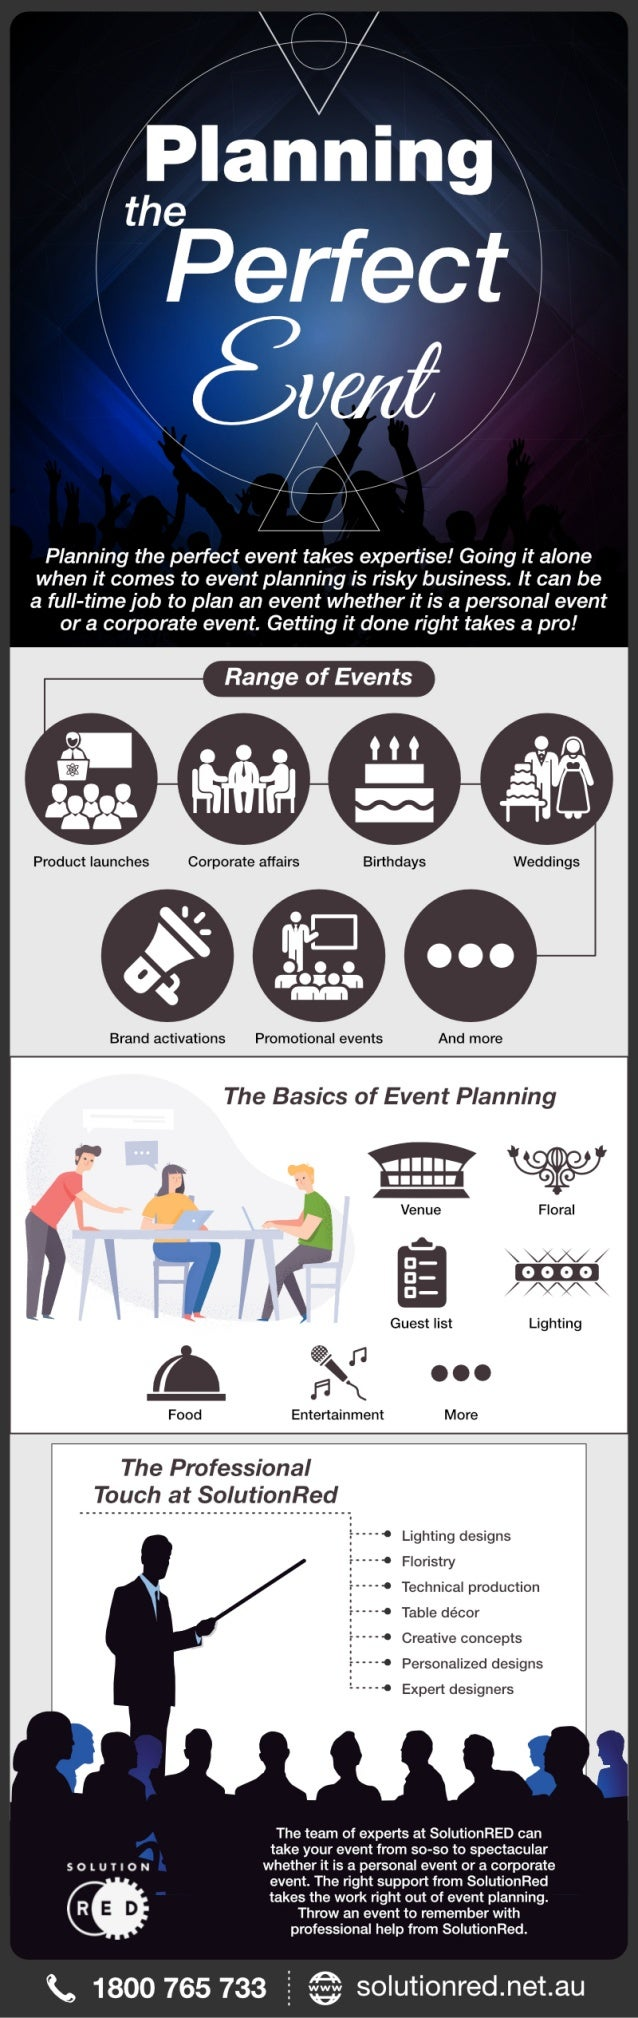 Planning the Perfect Event